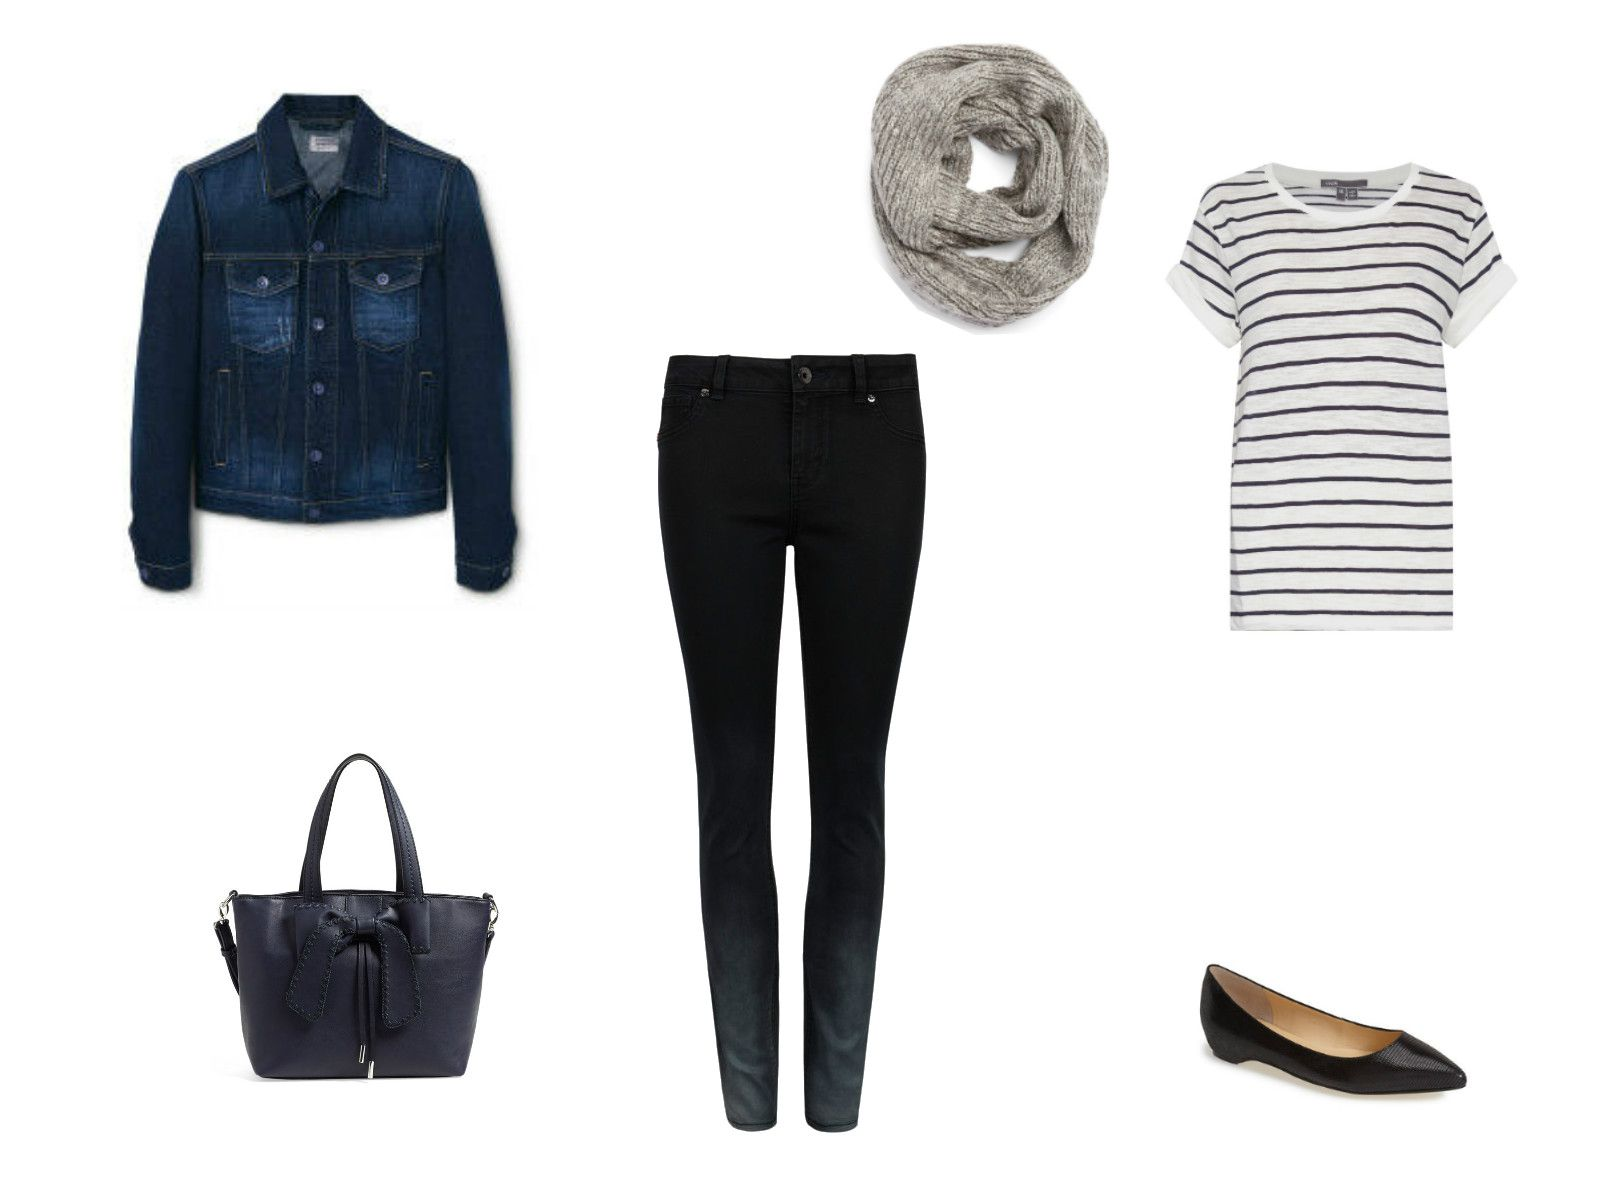 06fd6b33b90 Jean jacket and jeans outfit with striped shirt